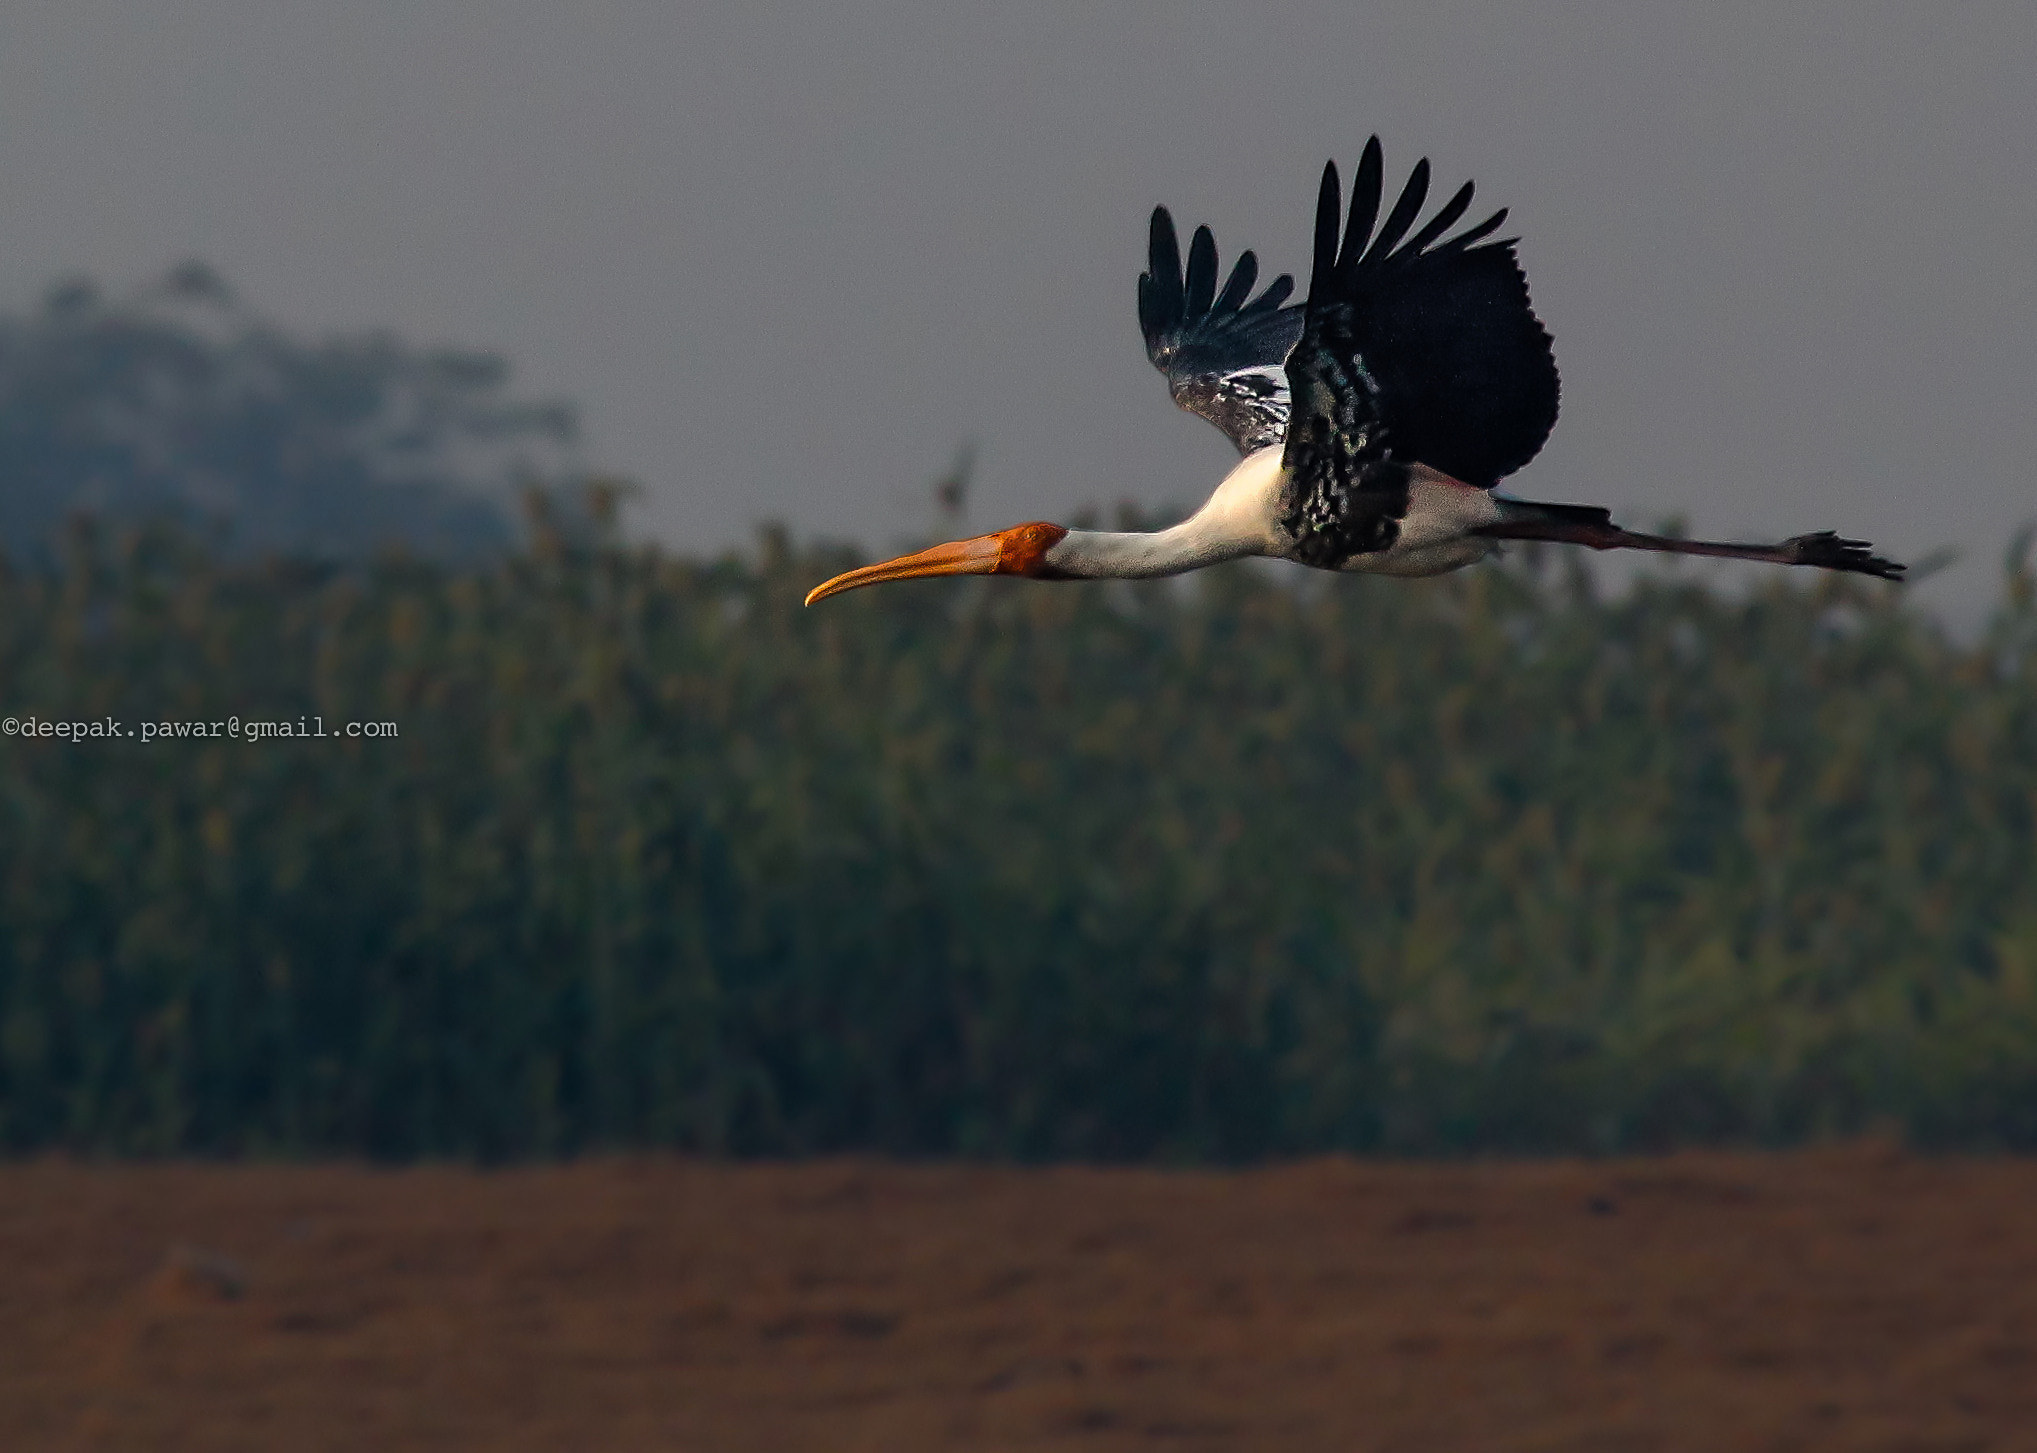 Photograph Painted stork by Deepak Pawar on 500px